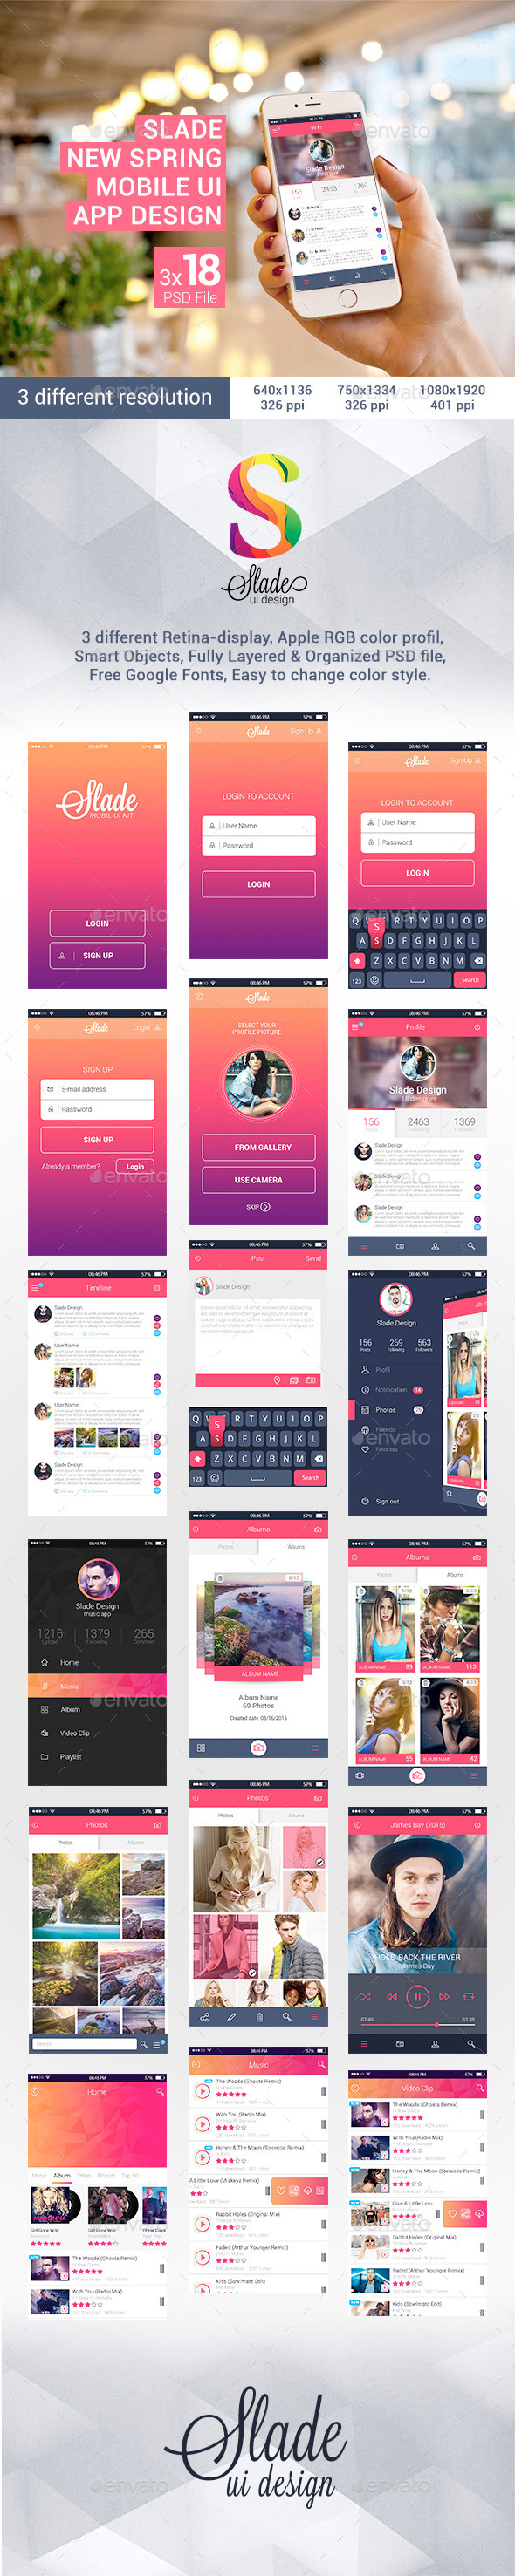 GraphicRiver Slade New Spring Mobile UI App Design 10968945